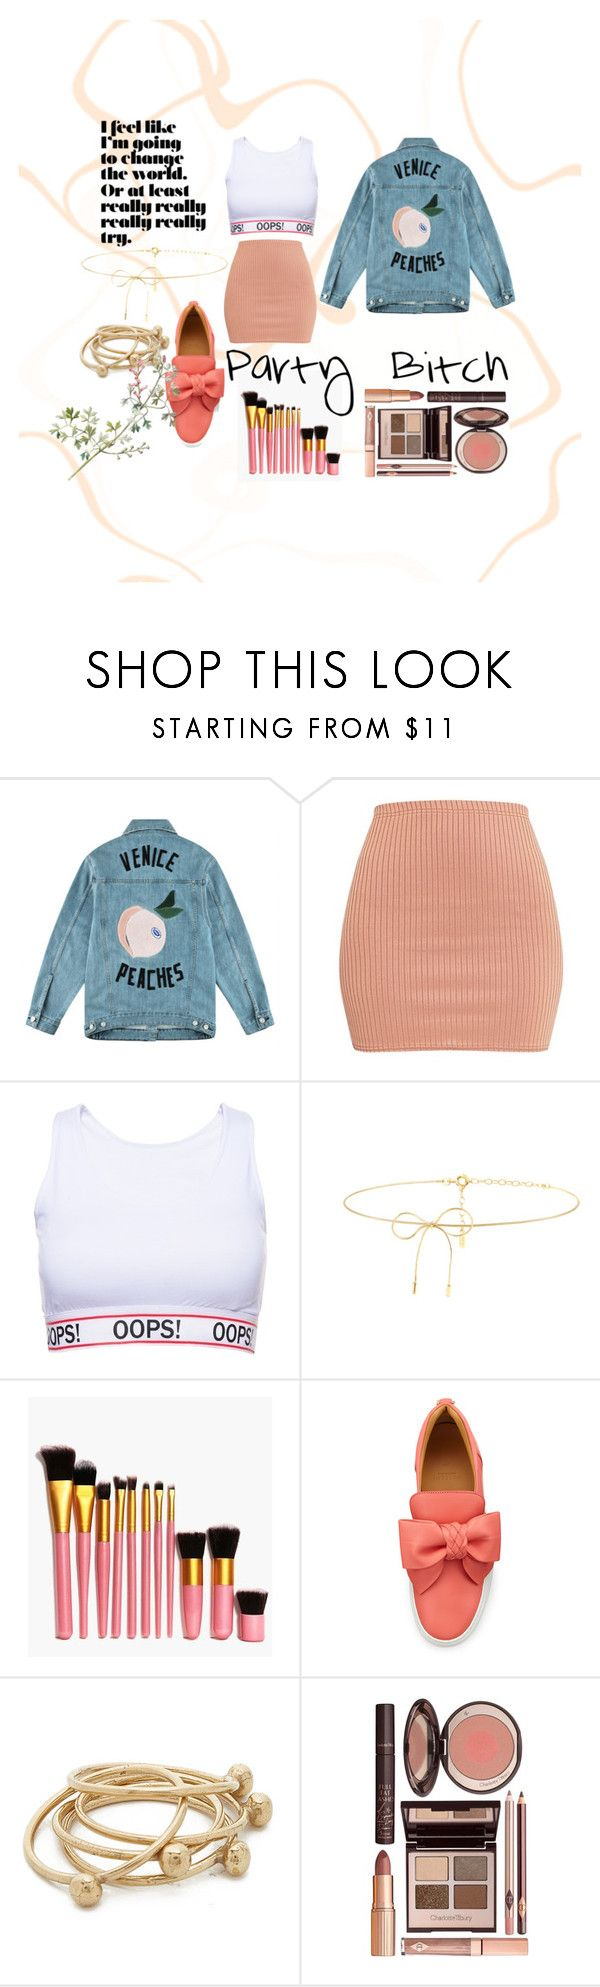 """""""Untitled #39"""" by heartyrose ❤ liked on Polyvore featuring Être Cécile, Lilou, Boohoo, BUSCEMI, Jacqueline Rose and Charlotte Tilbury"""